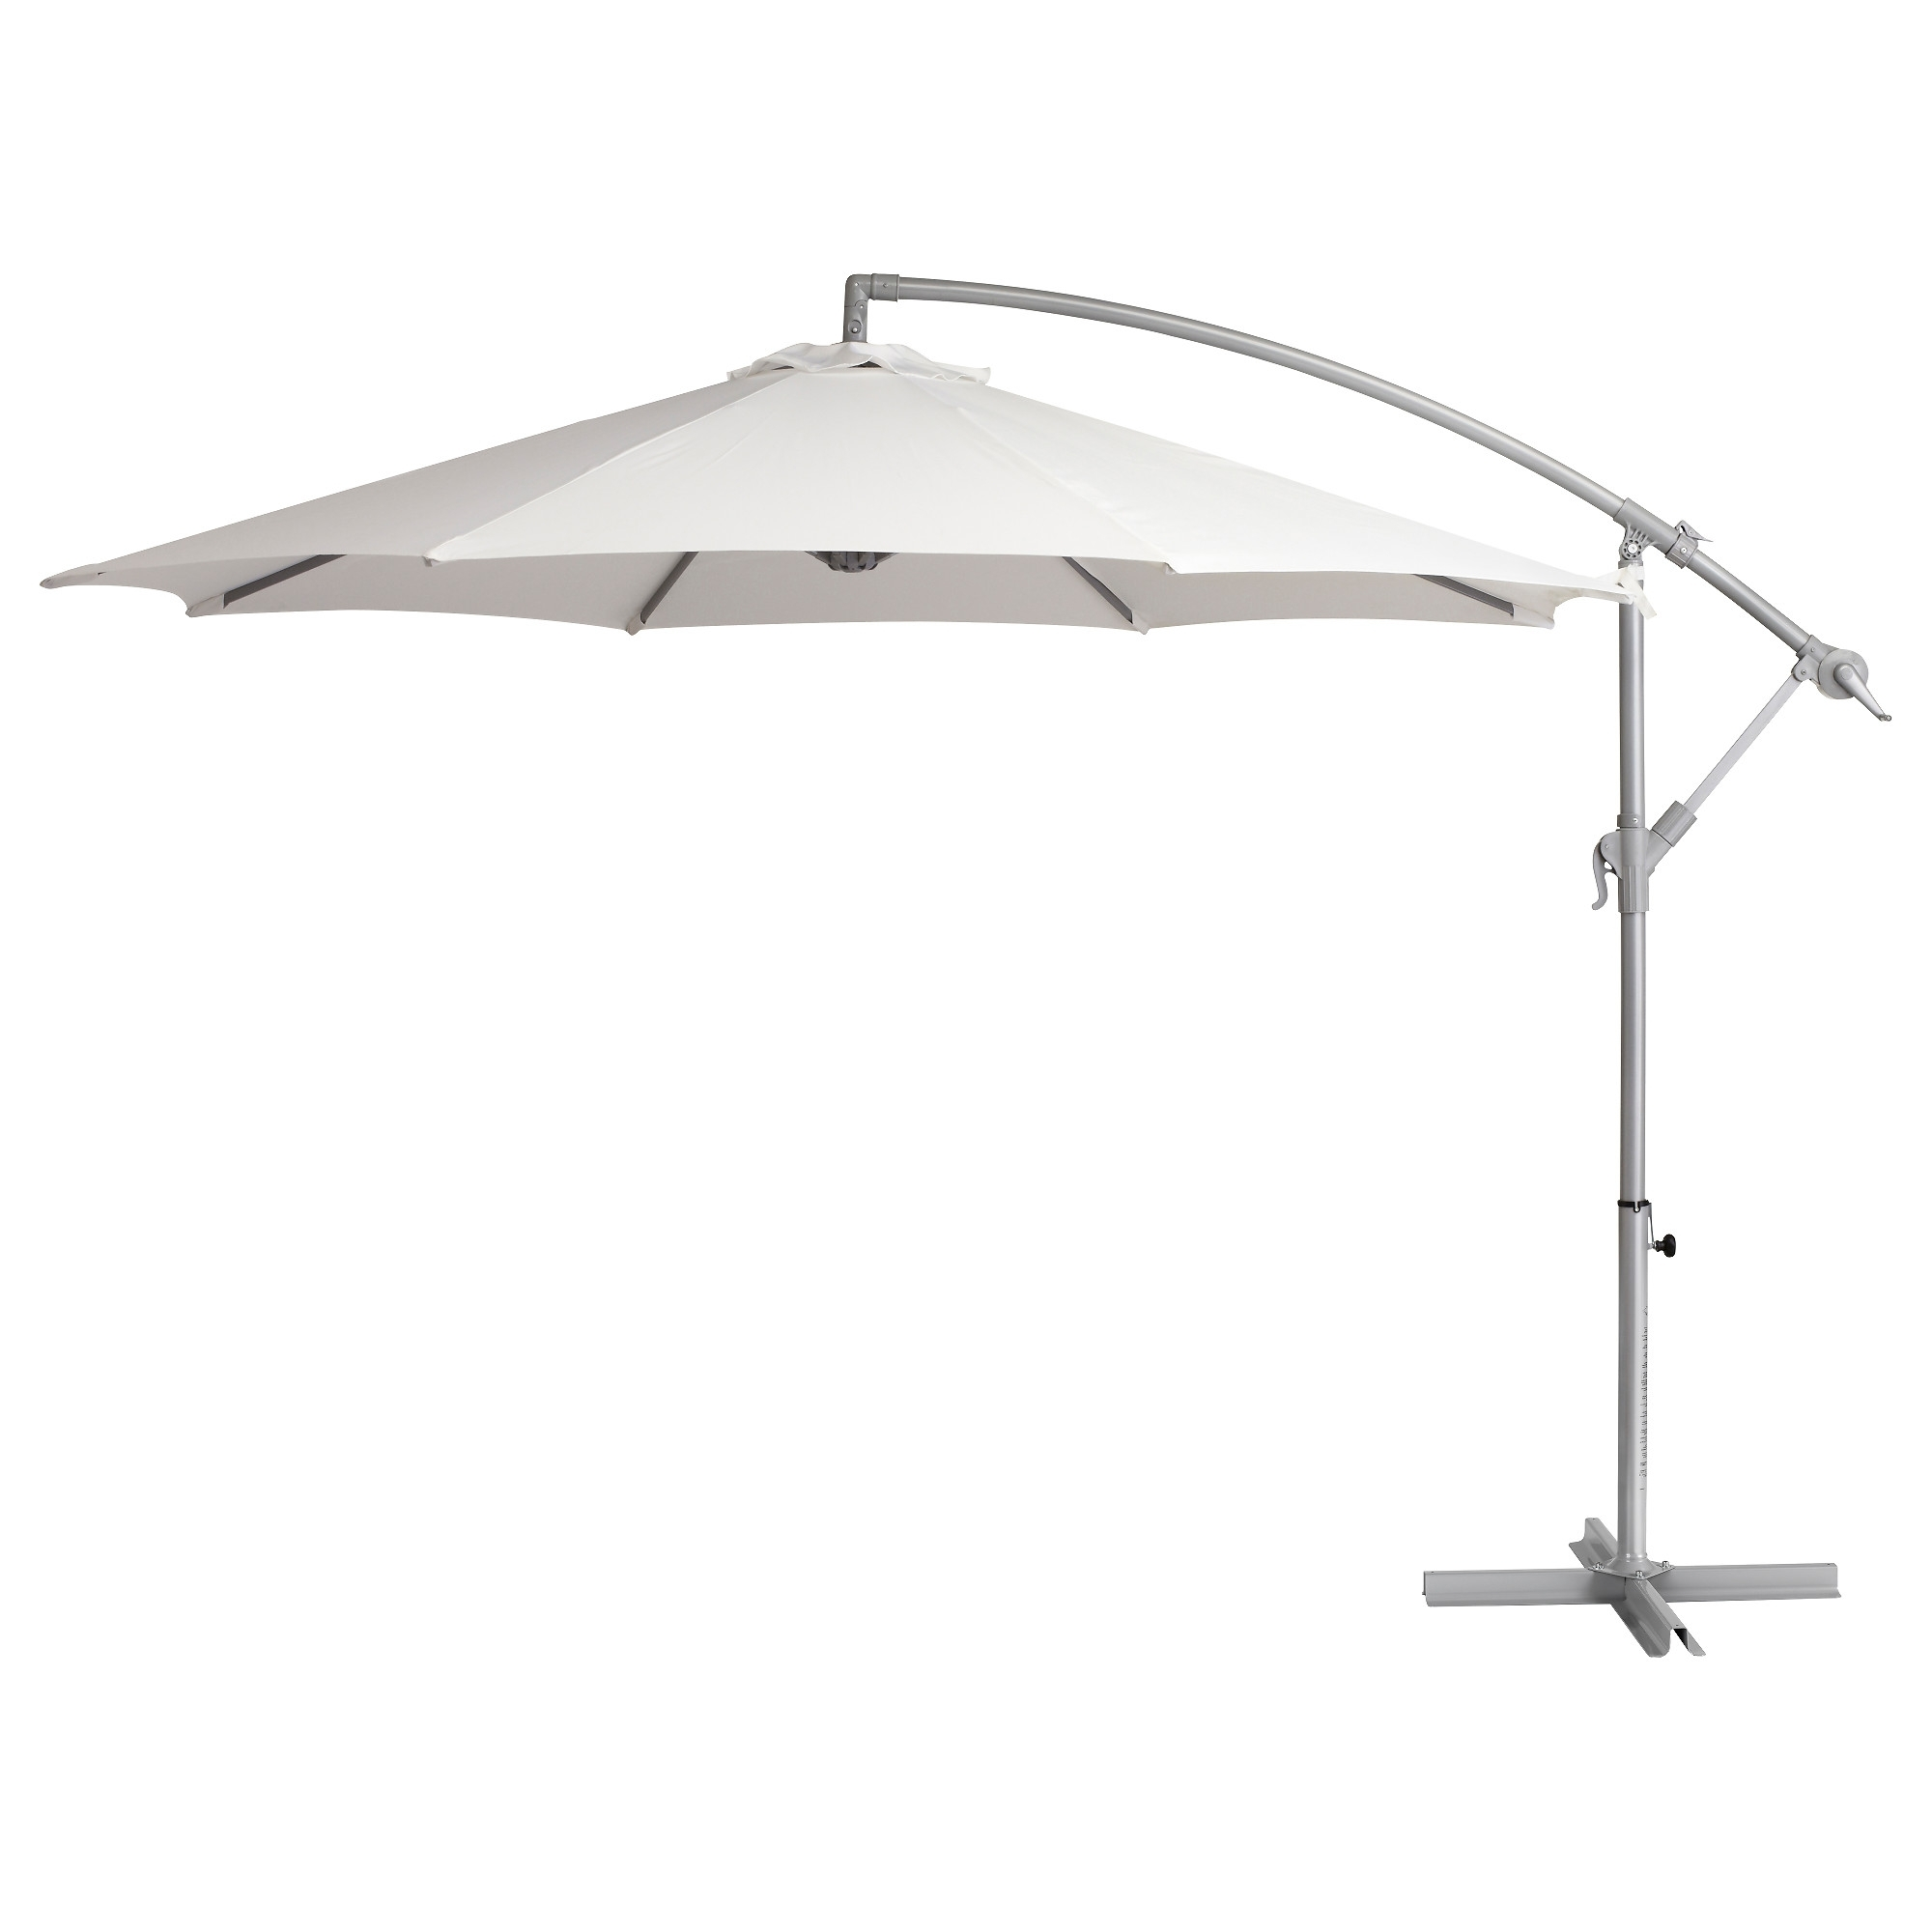 2019 White Patio Umbrellas With Regard To 49 Ikea Patio Umbrella, Svart Umbrella Base Ikea (Gallery 19 of 20)